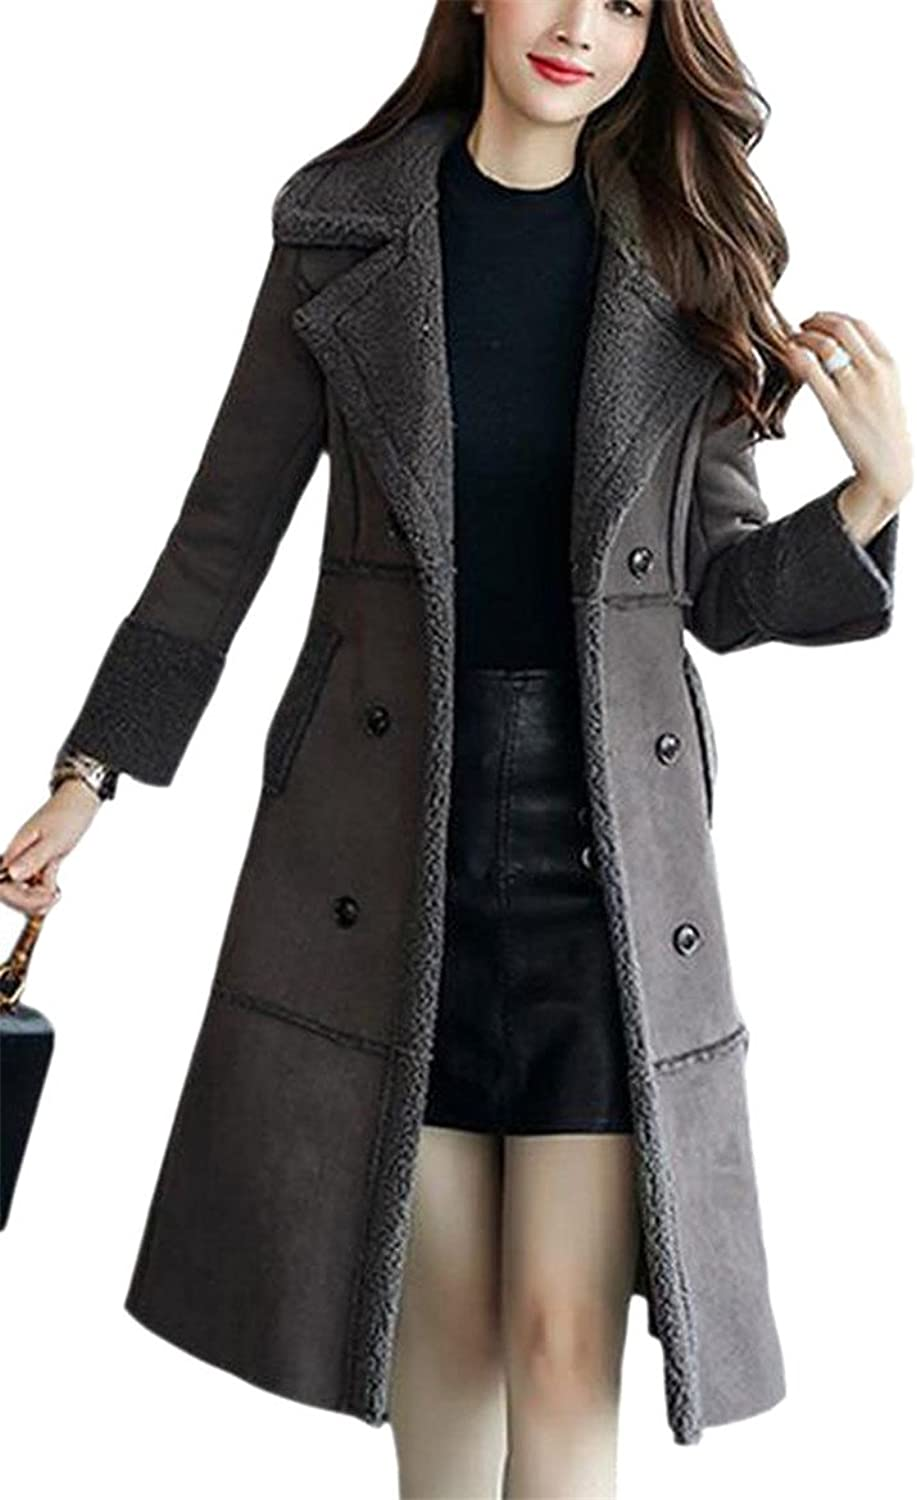 HTOOHTOOH Women's Outerwear Winter Faux Suede Shearling Long Trench Coat